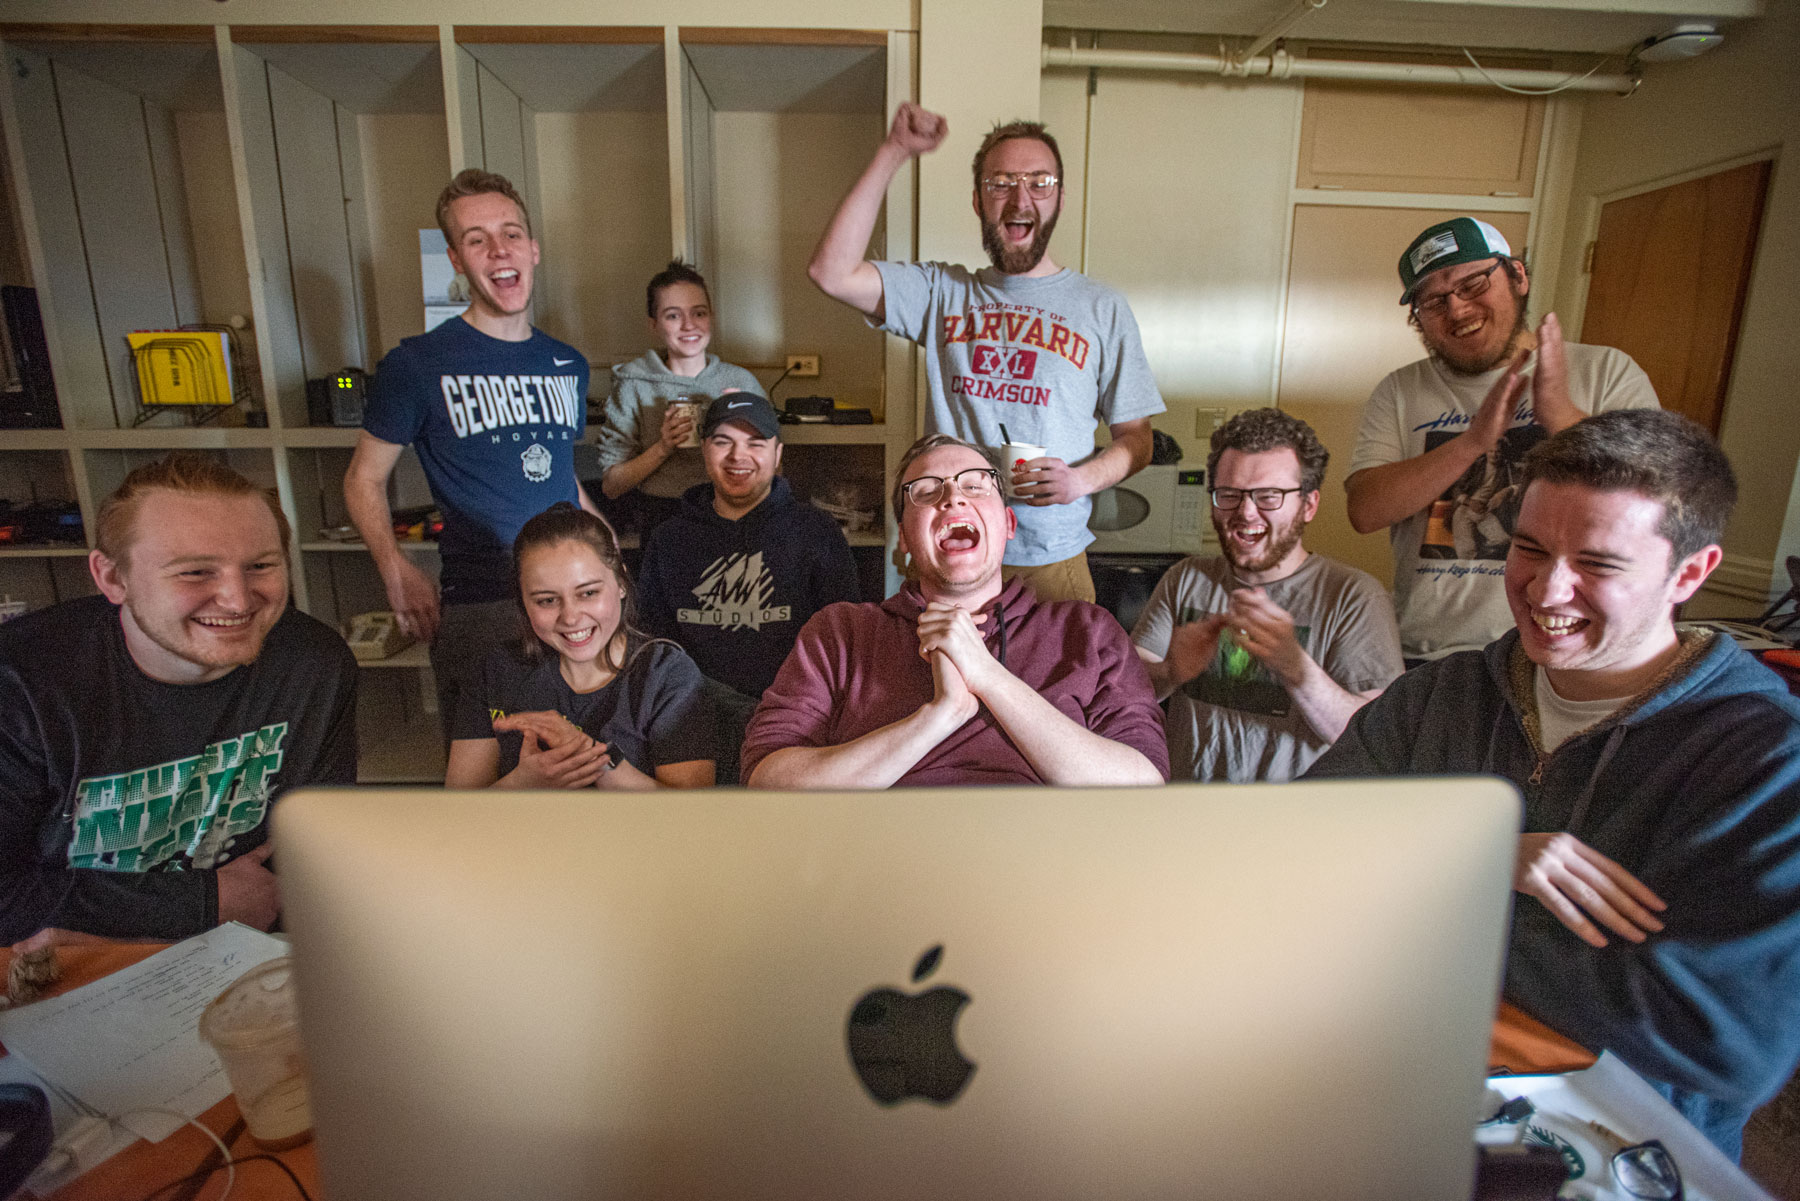 Student team celebrating around a Macintosh computer